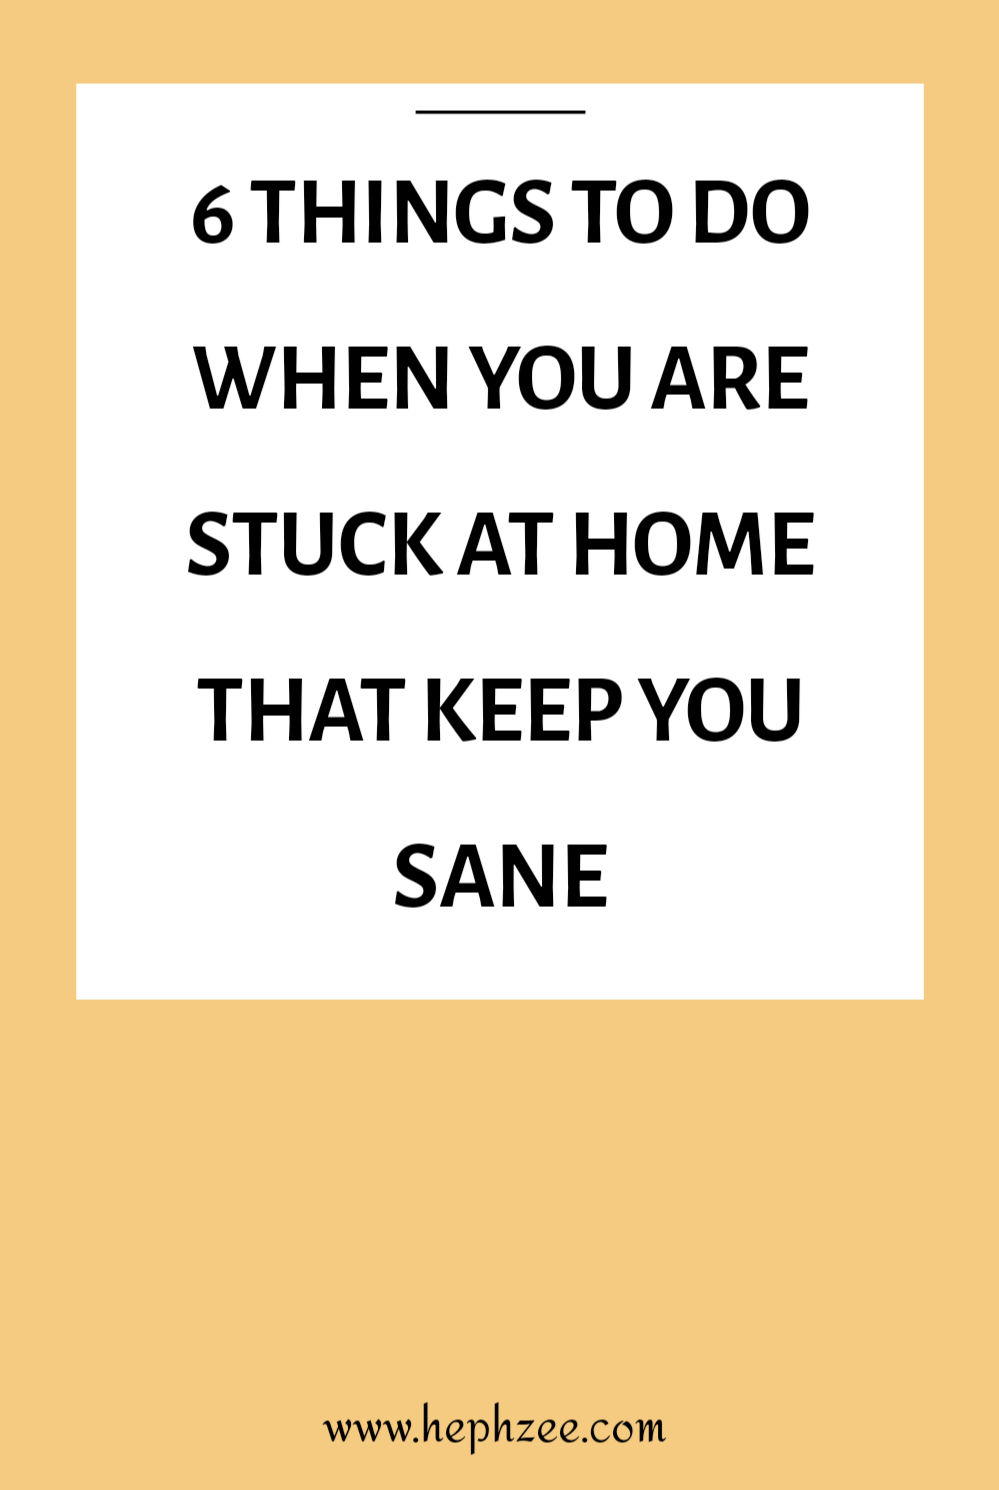 Tips for staying sane while staying home